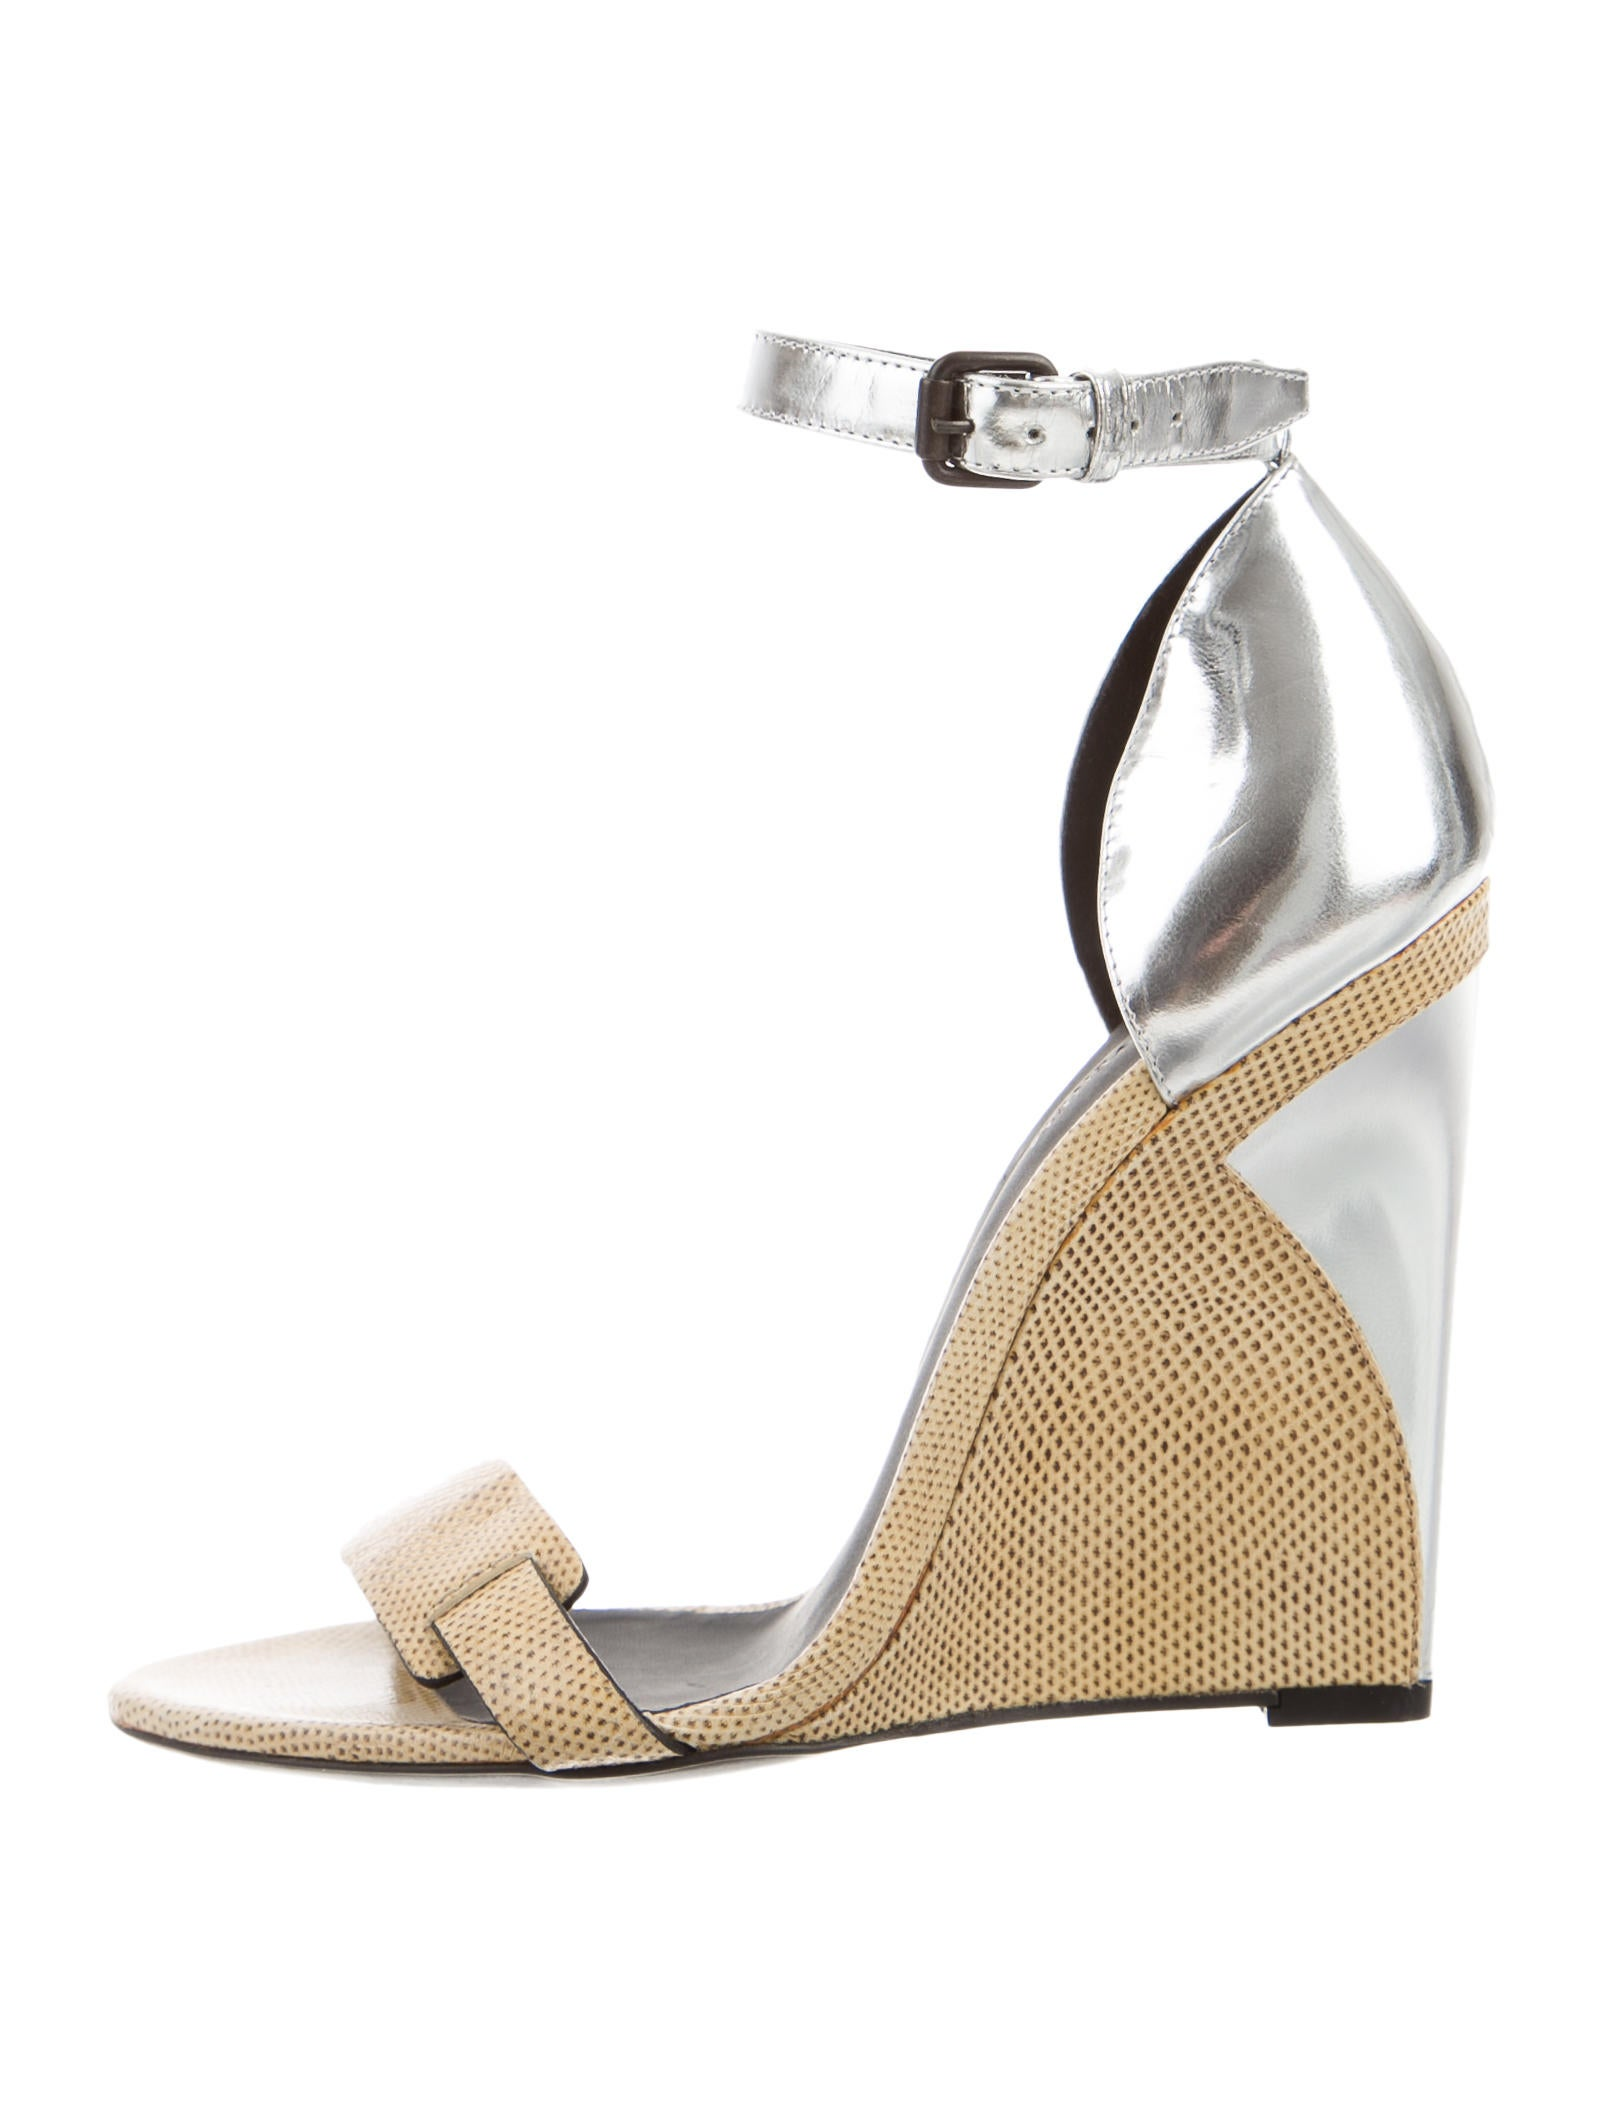 Bottega Veneta Embossed Ankle-Strap Wedges for cheap outlet authentic outlet amazon cheap pictures GKJ1Sng